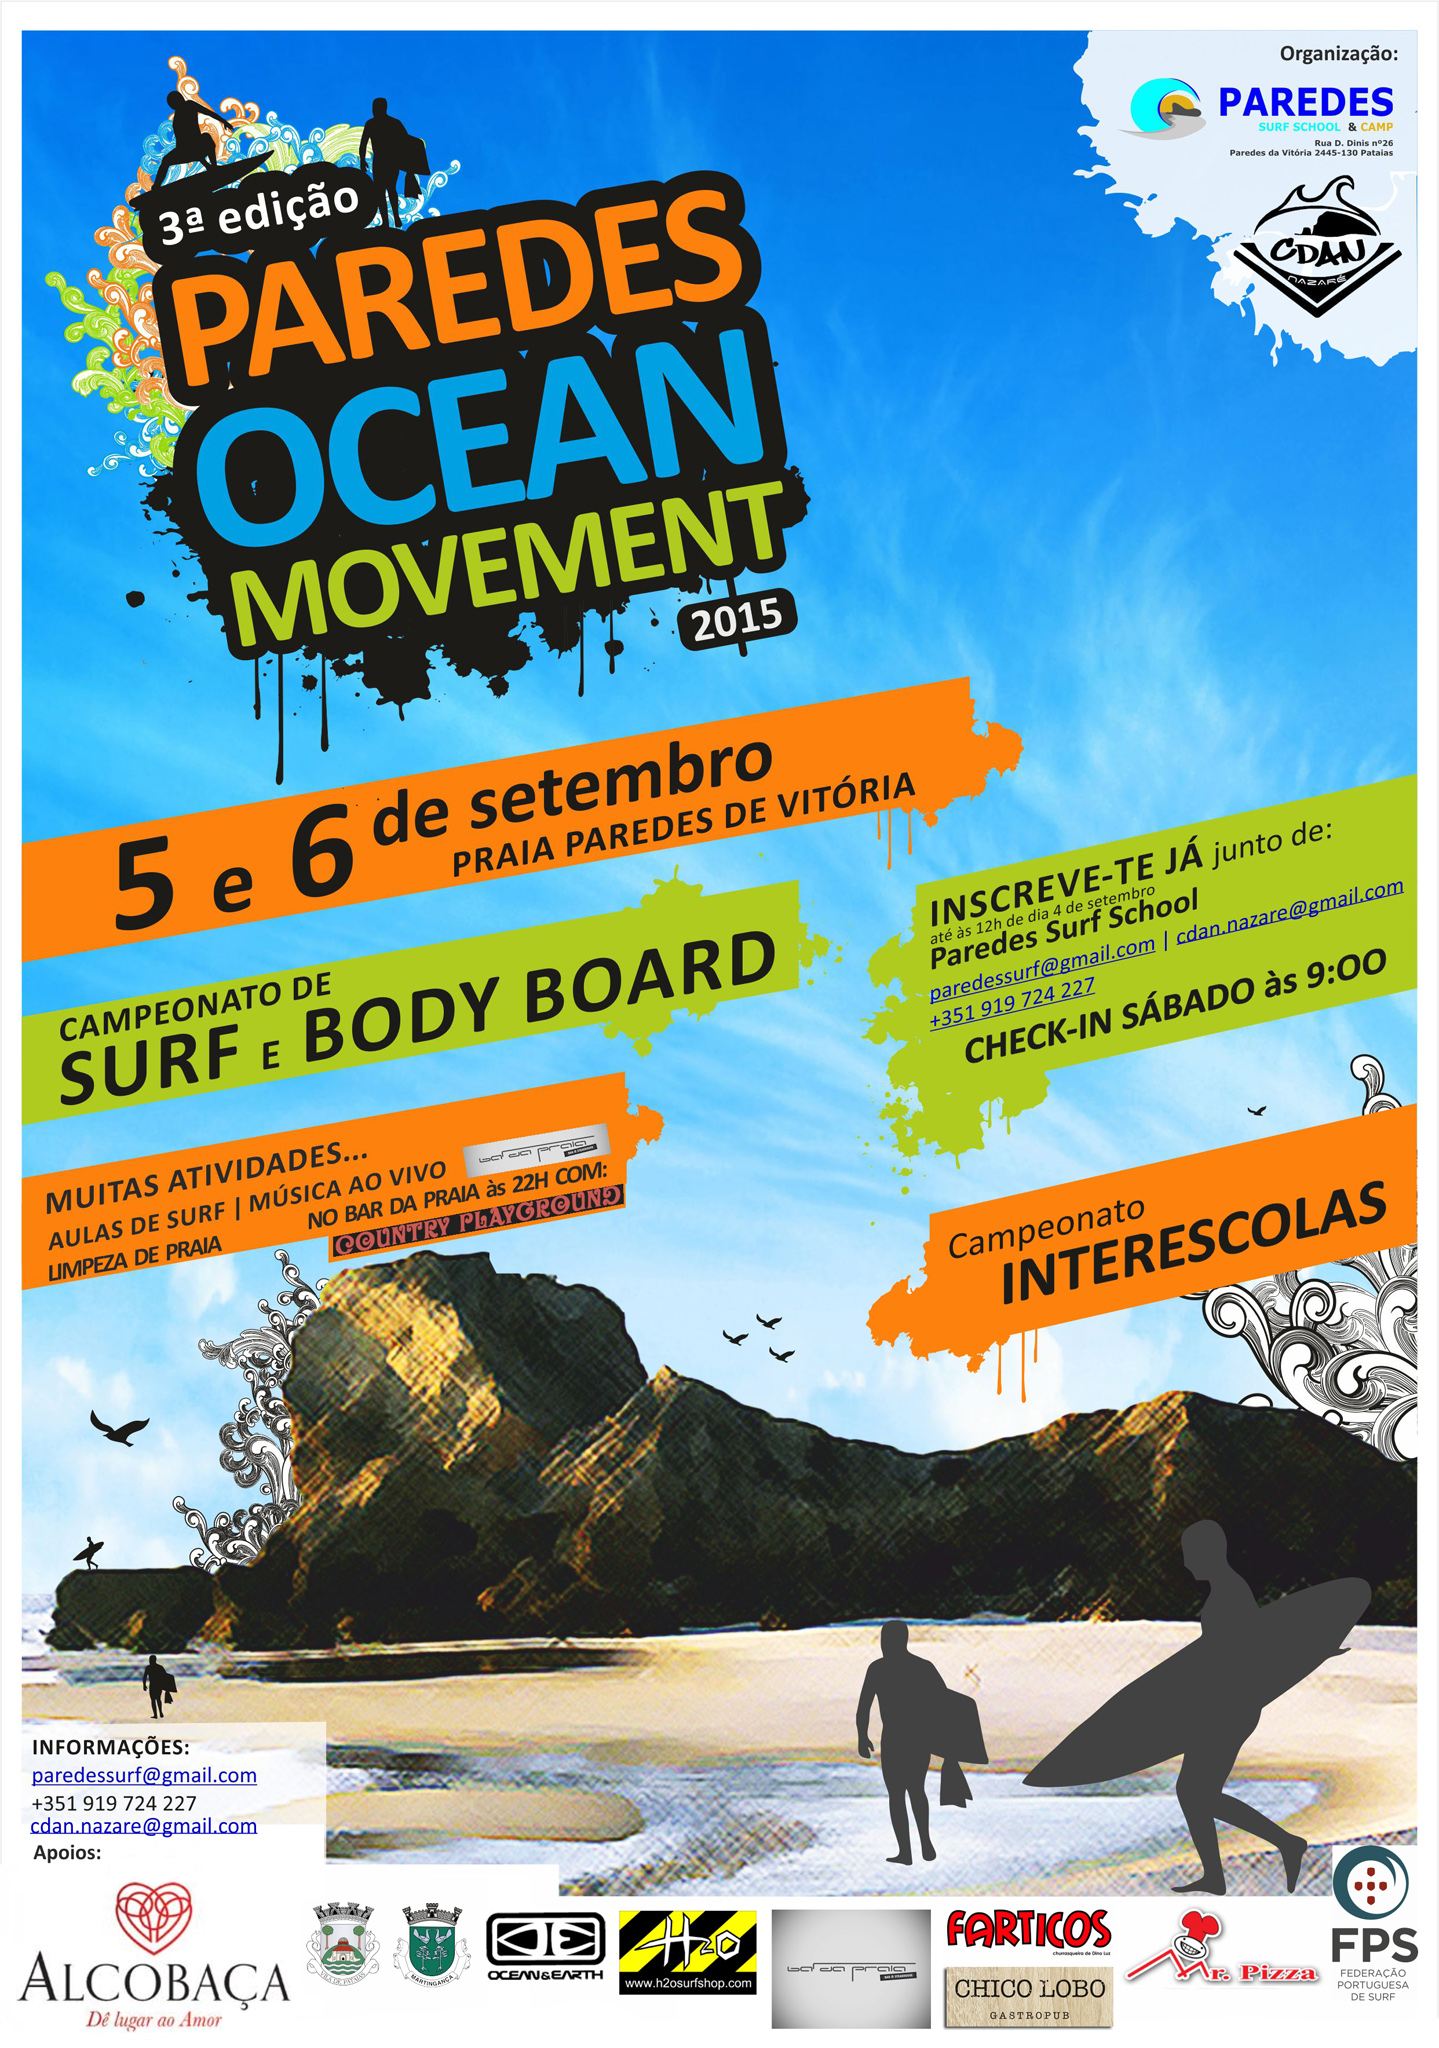 Click to enlarge image Paredes Ocean Movement 2015.jpg